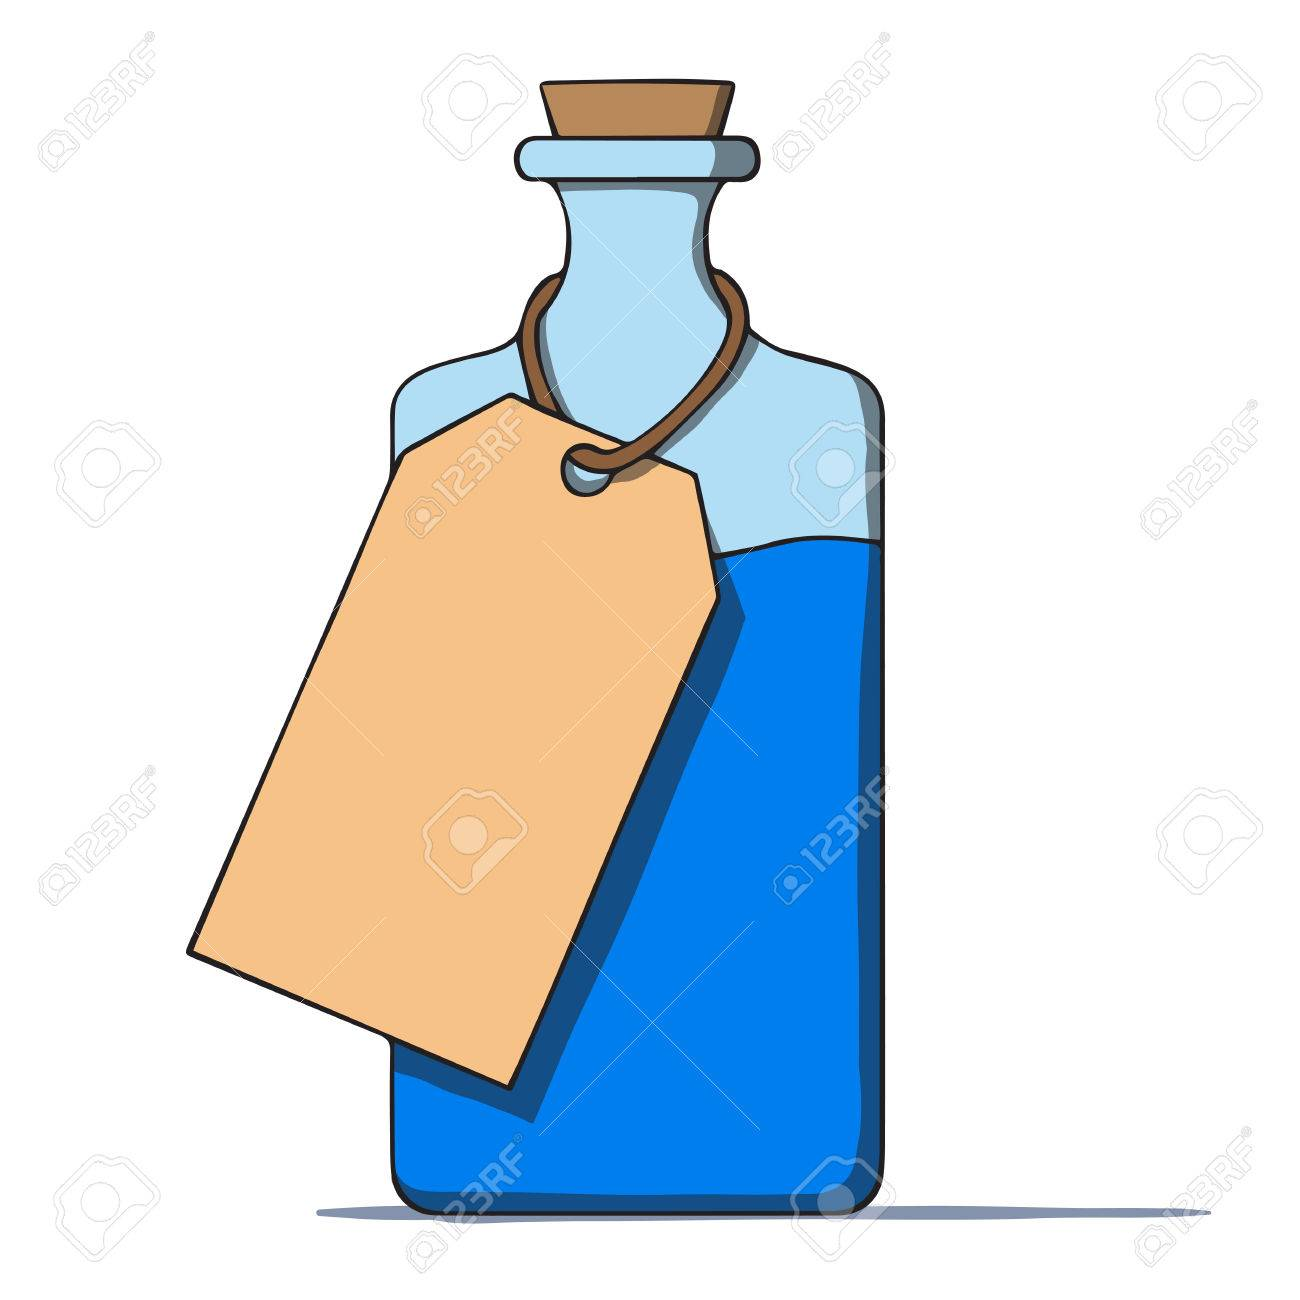 Cartoon bottle with a tag  Vector illustration Stock Vector - 25259476